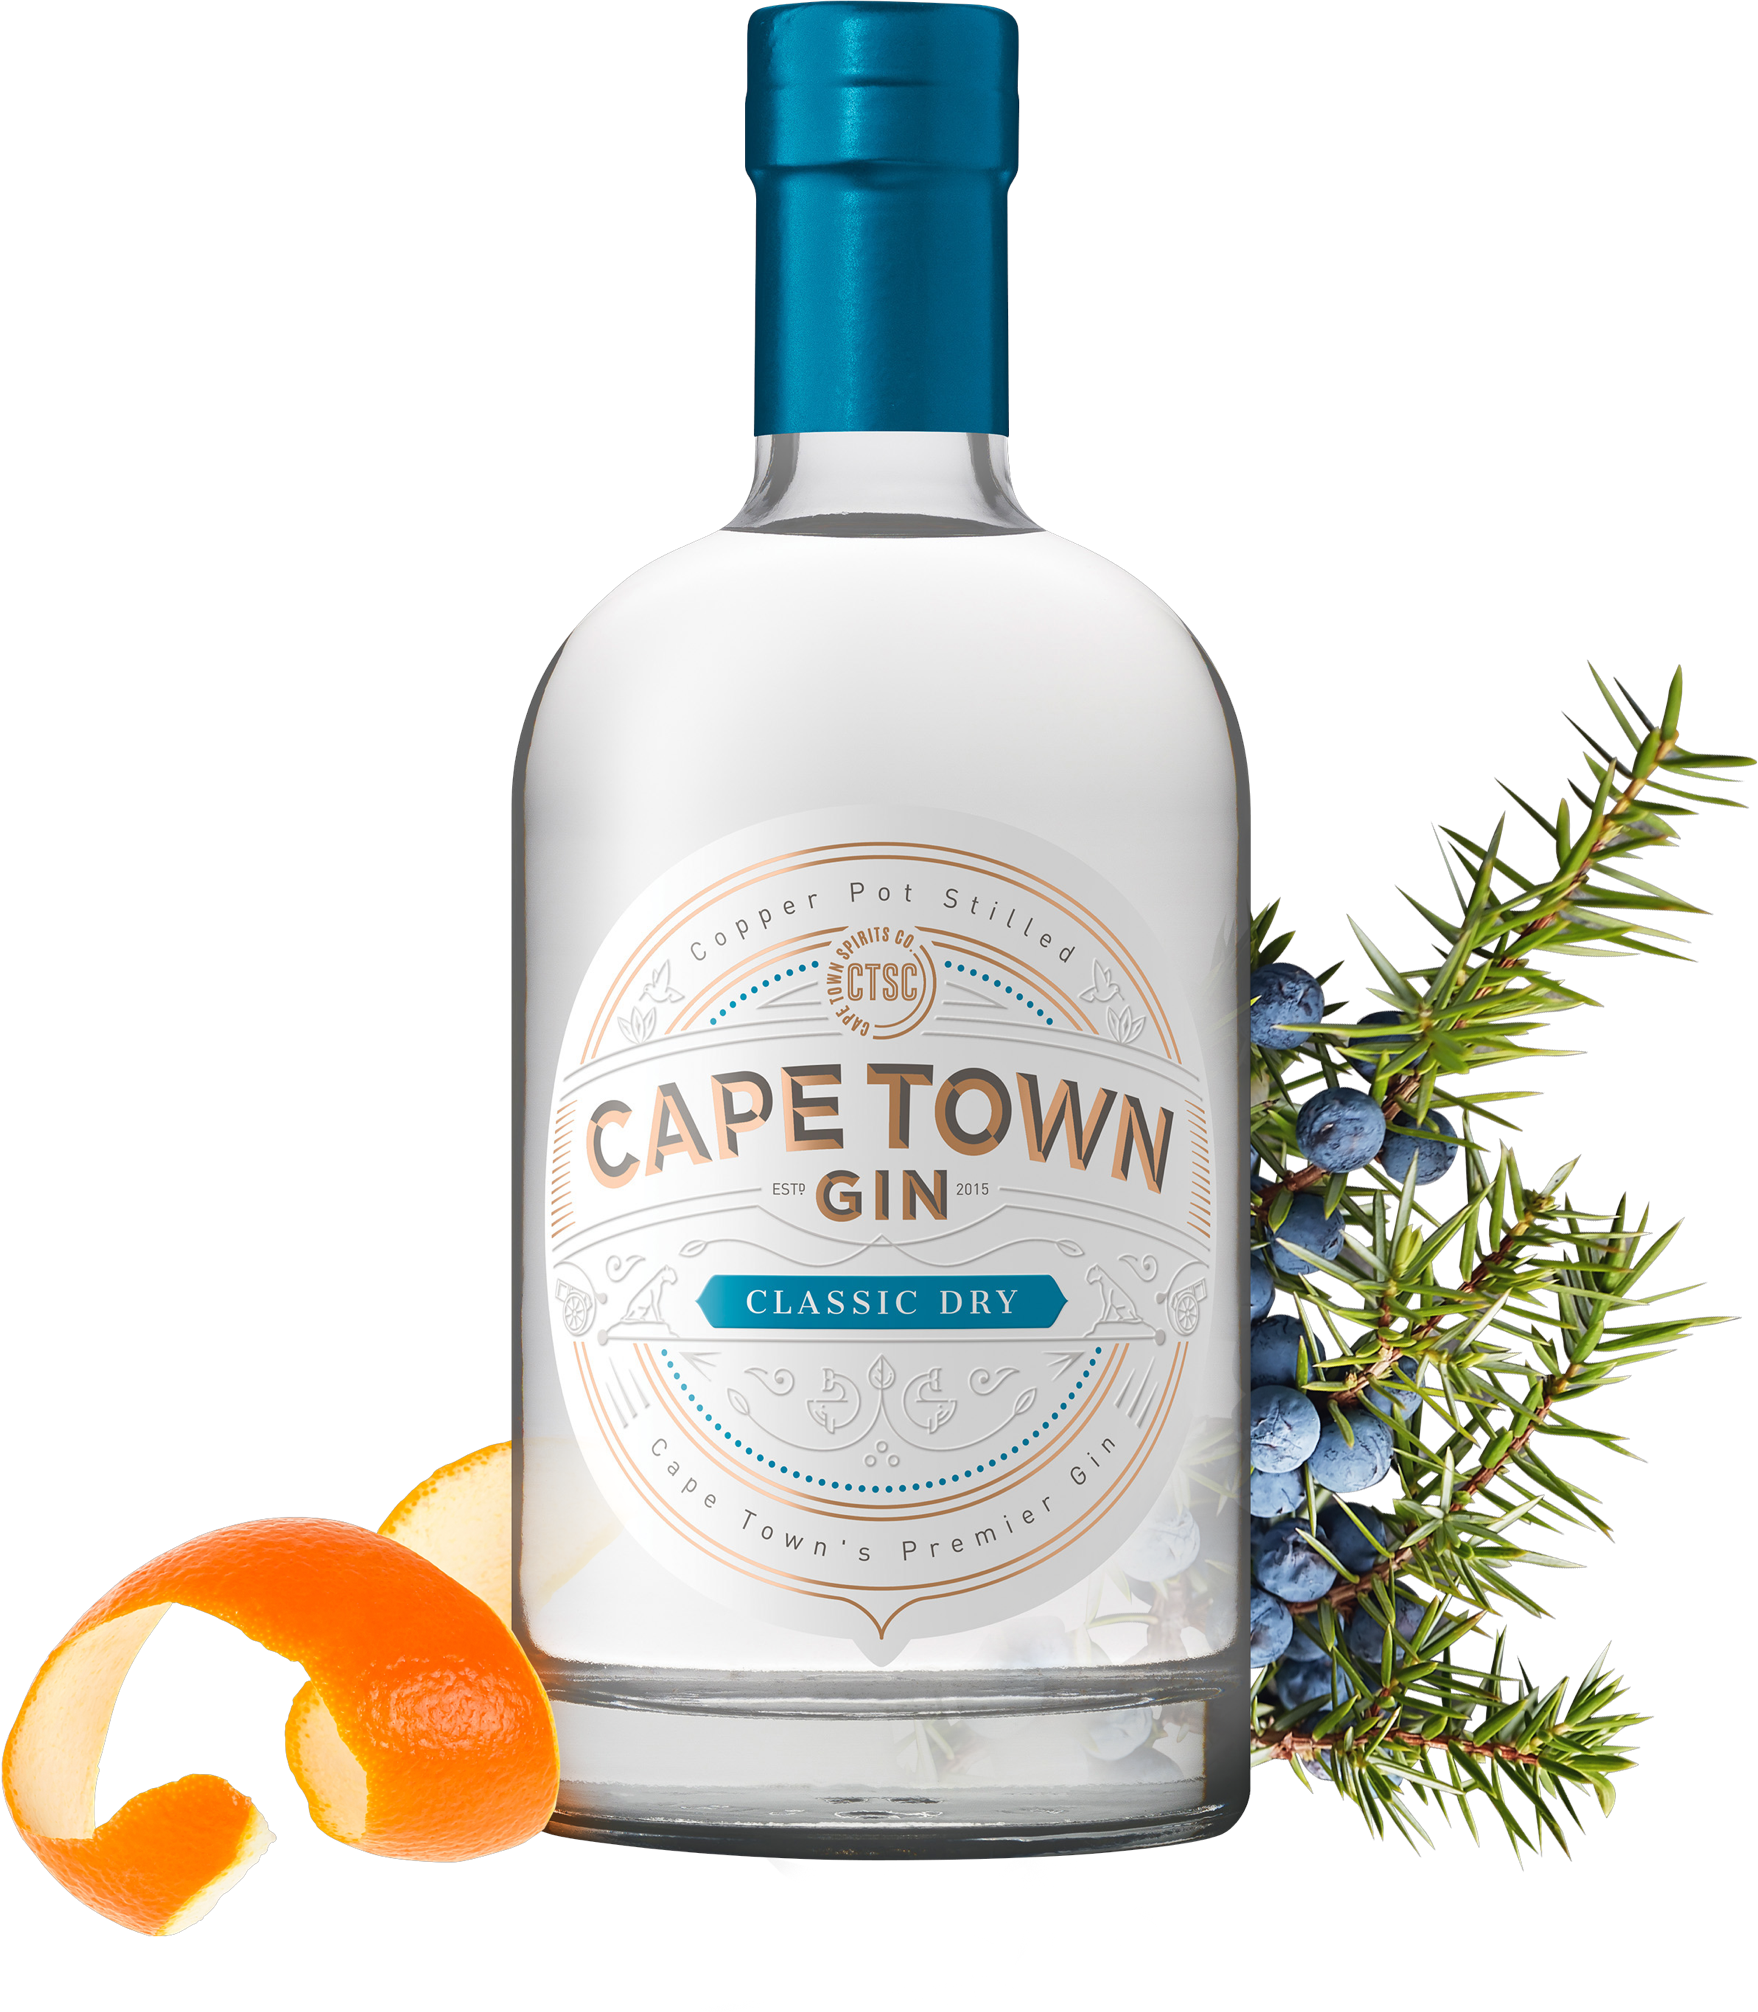 CAPE TOWN CLASSIC DRY GIN